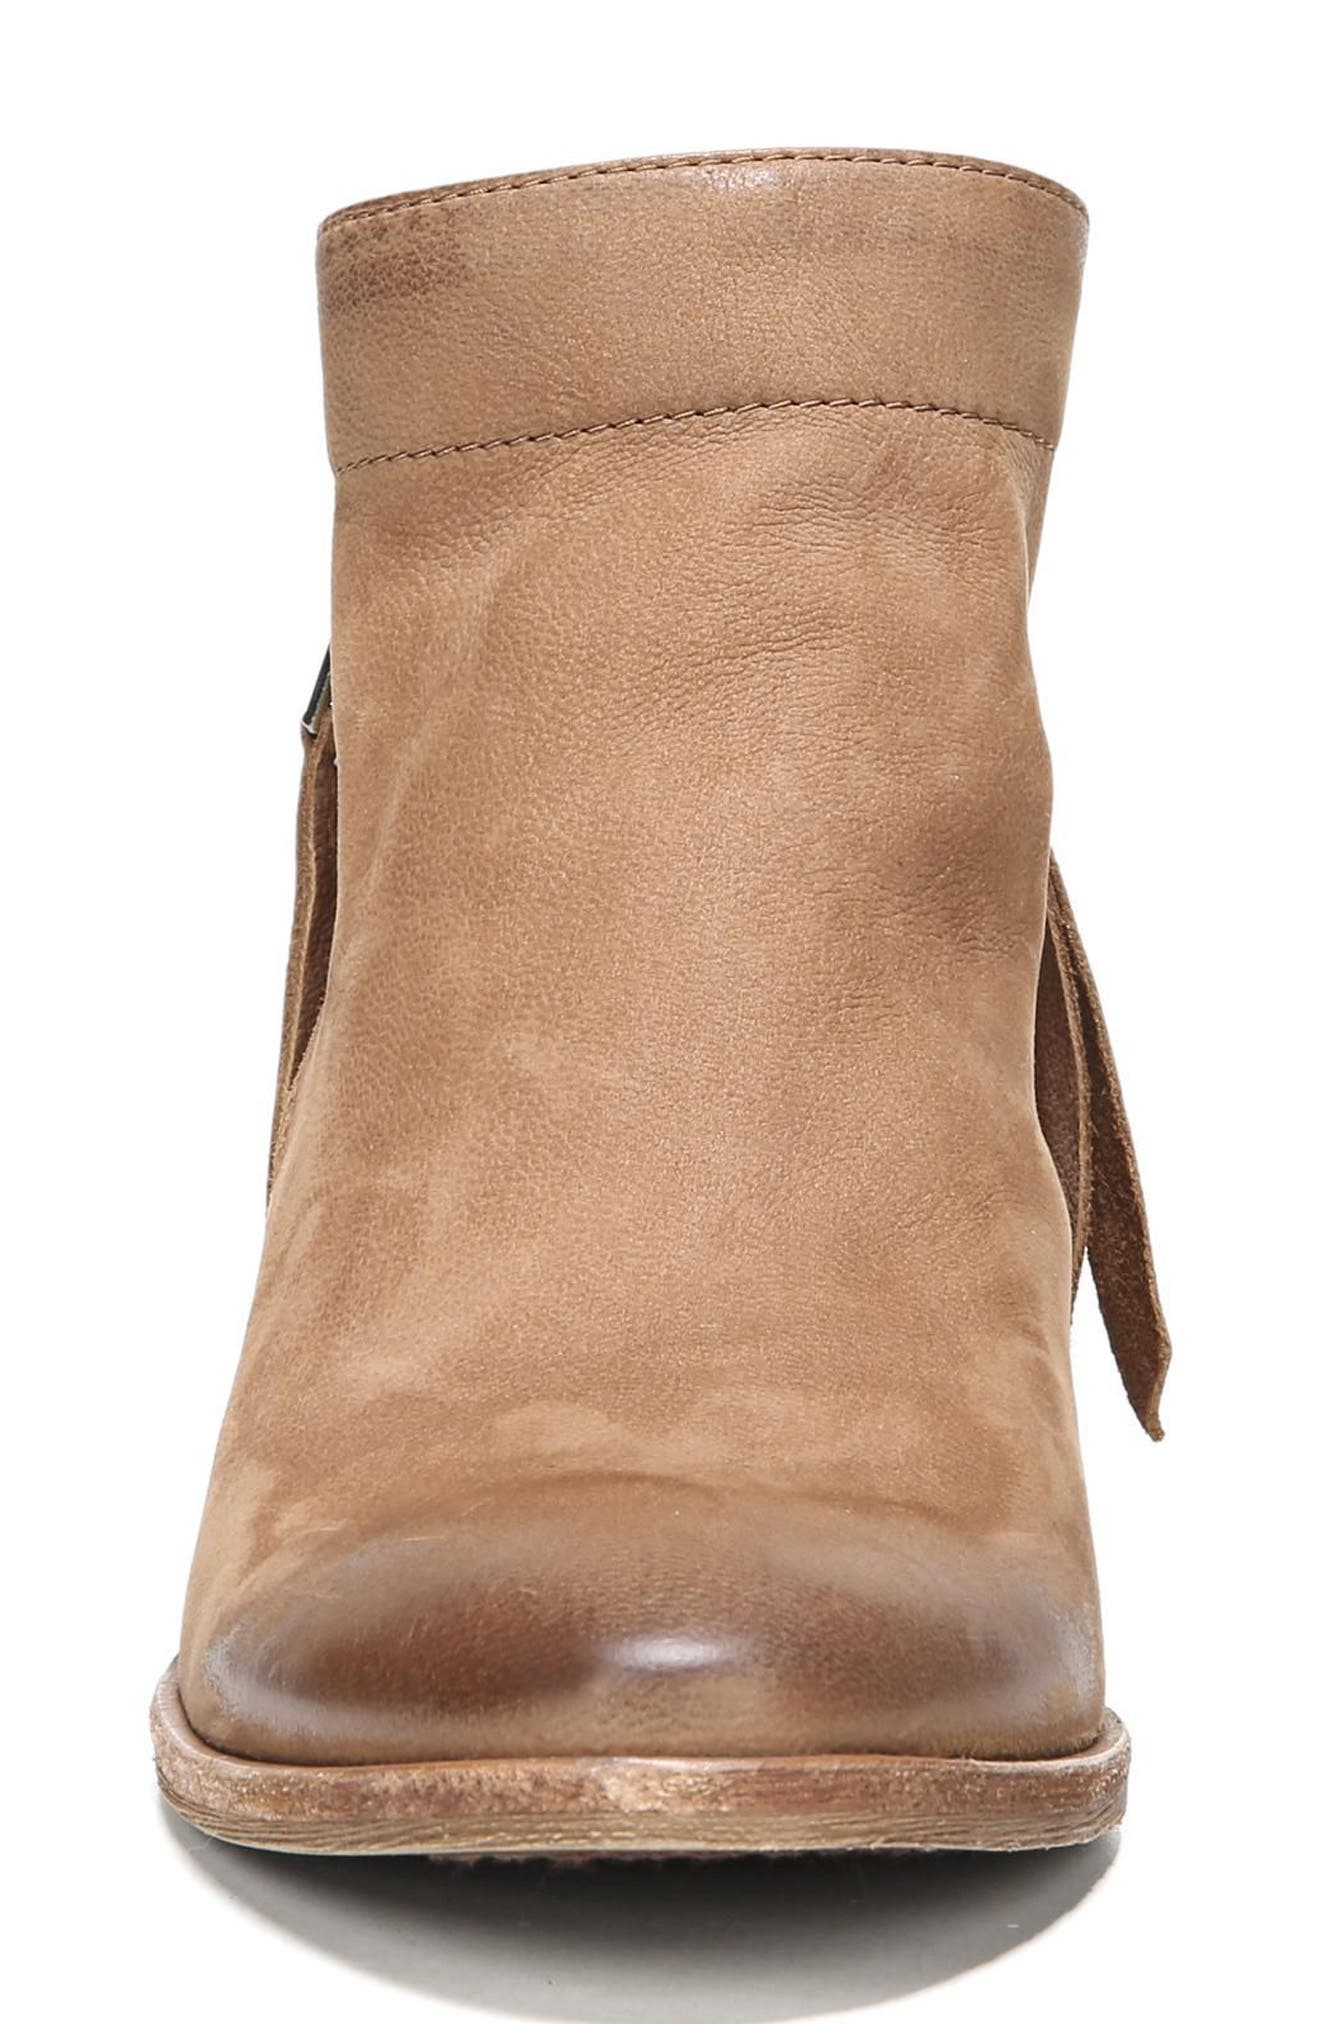 Packer Bootie,                             Alternate thumbnail 4, color,                             Deep Saddle Leather